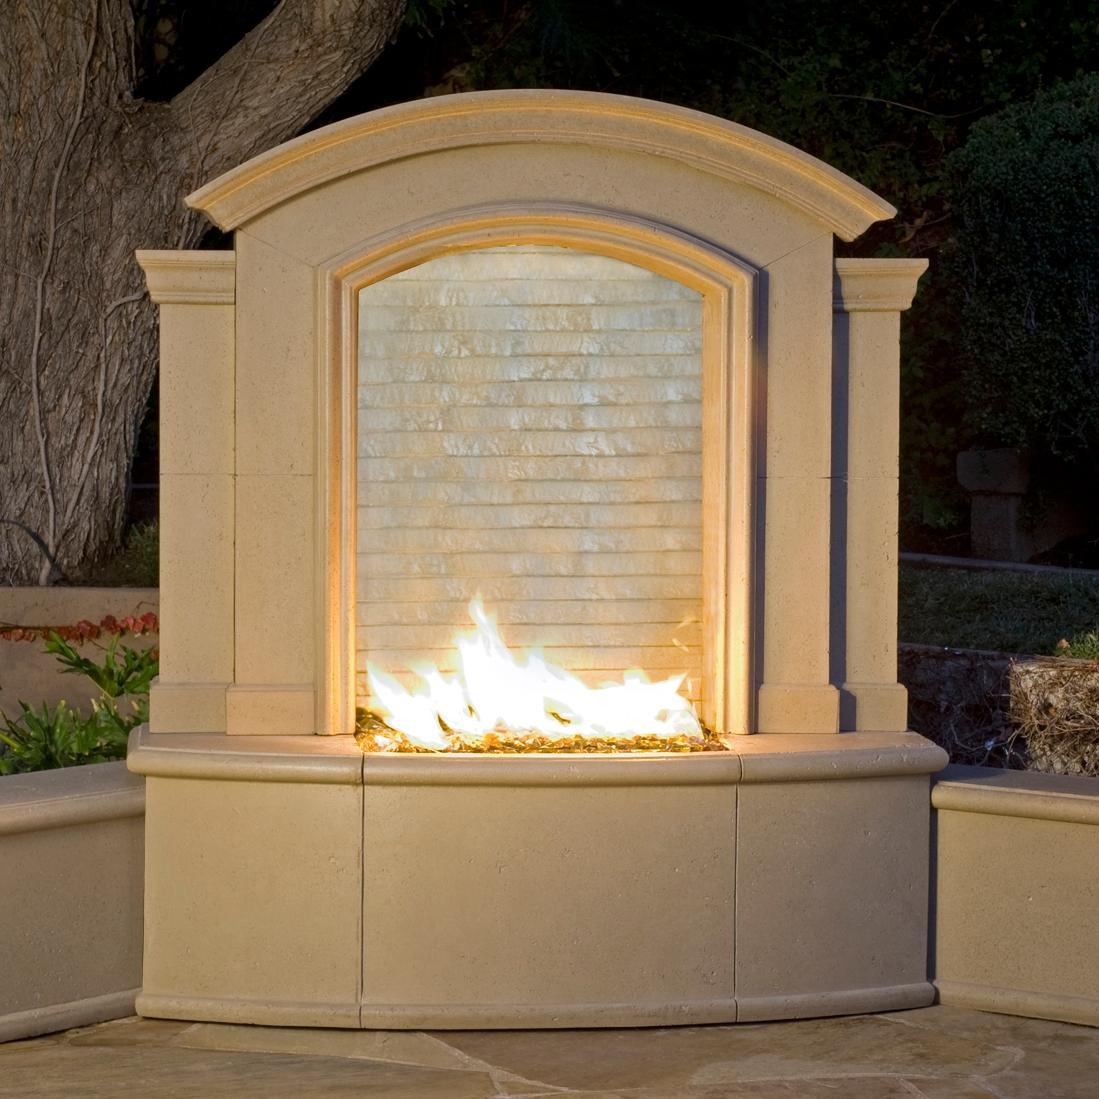 Picture of American Fyre Designs 61-Inch Outdoor Natural Gas Large Firefall - Cafe Blanco